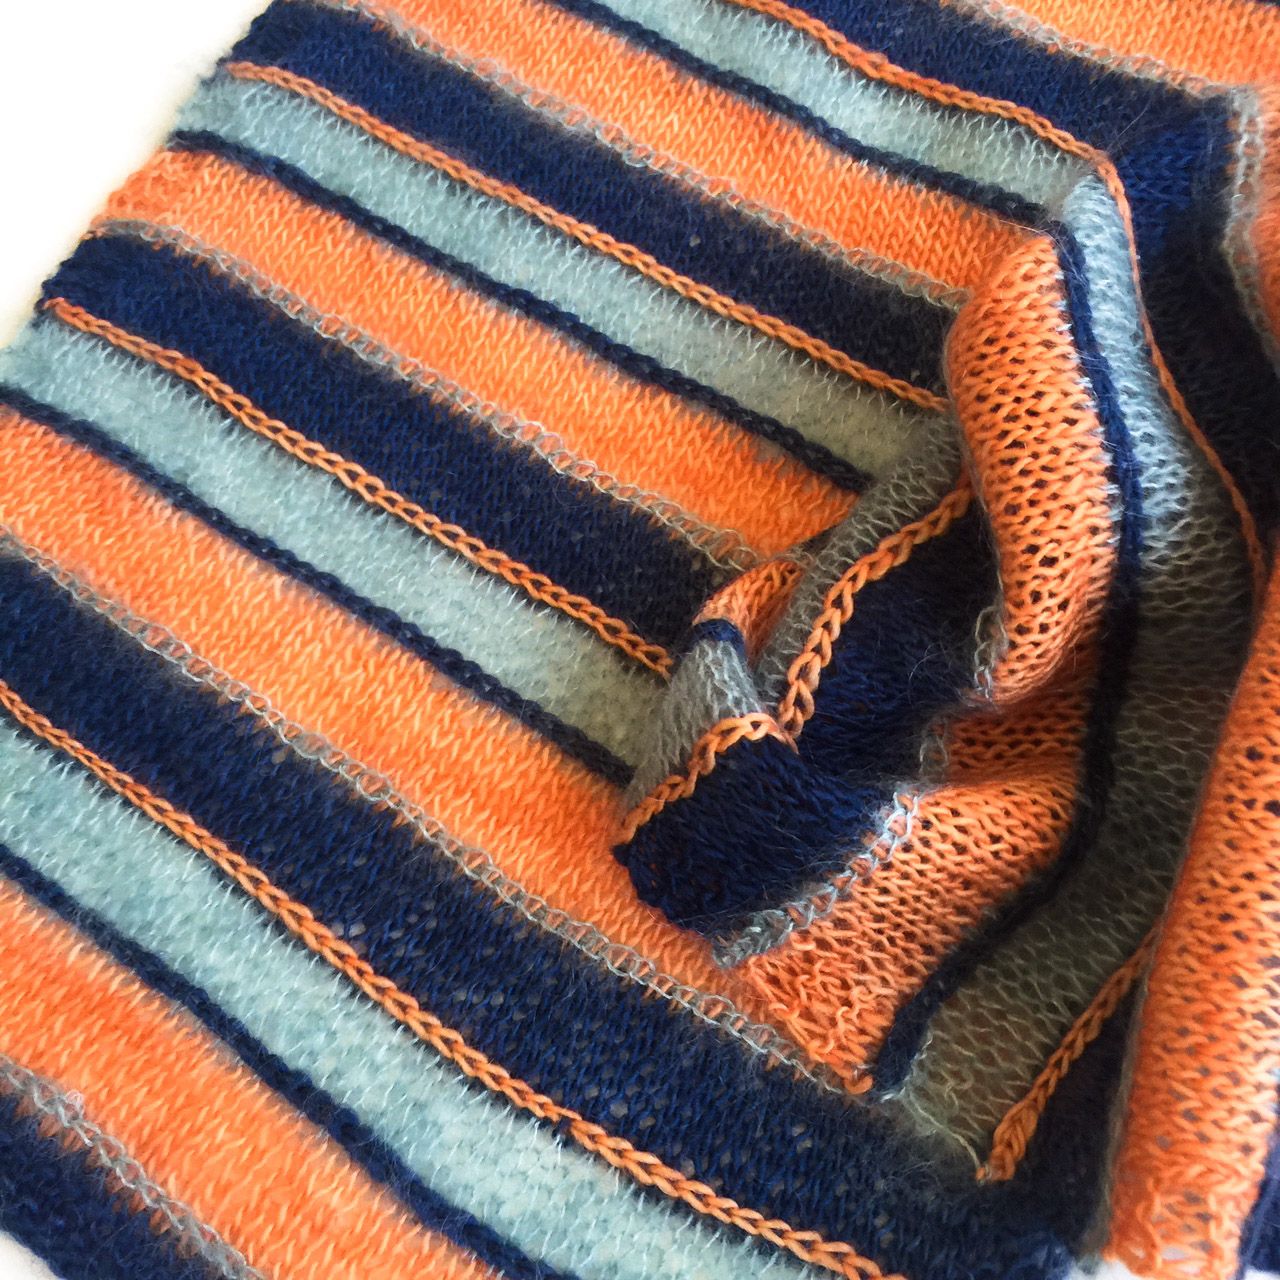 Colourful knit stripes by cowgirlblues in mohair and wool yarns